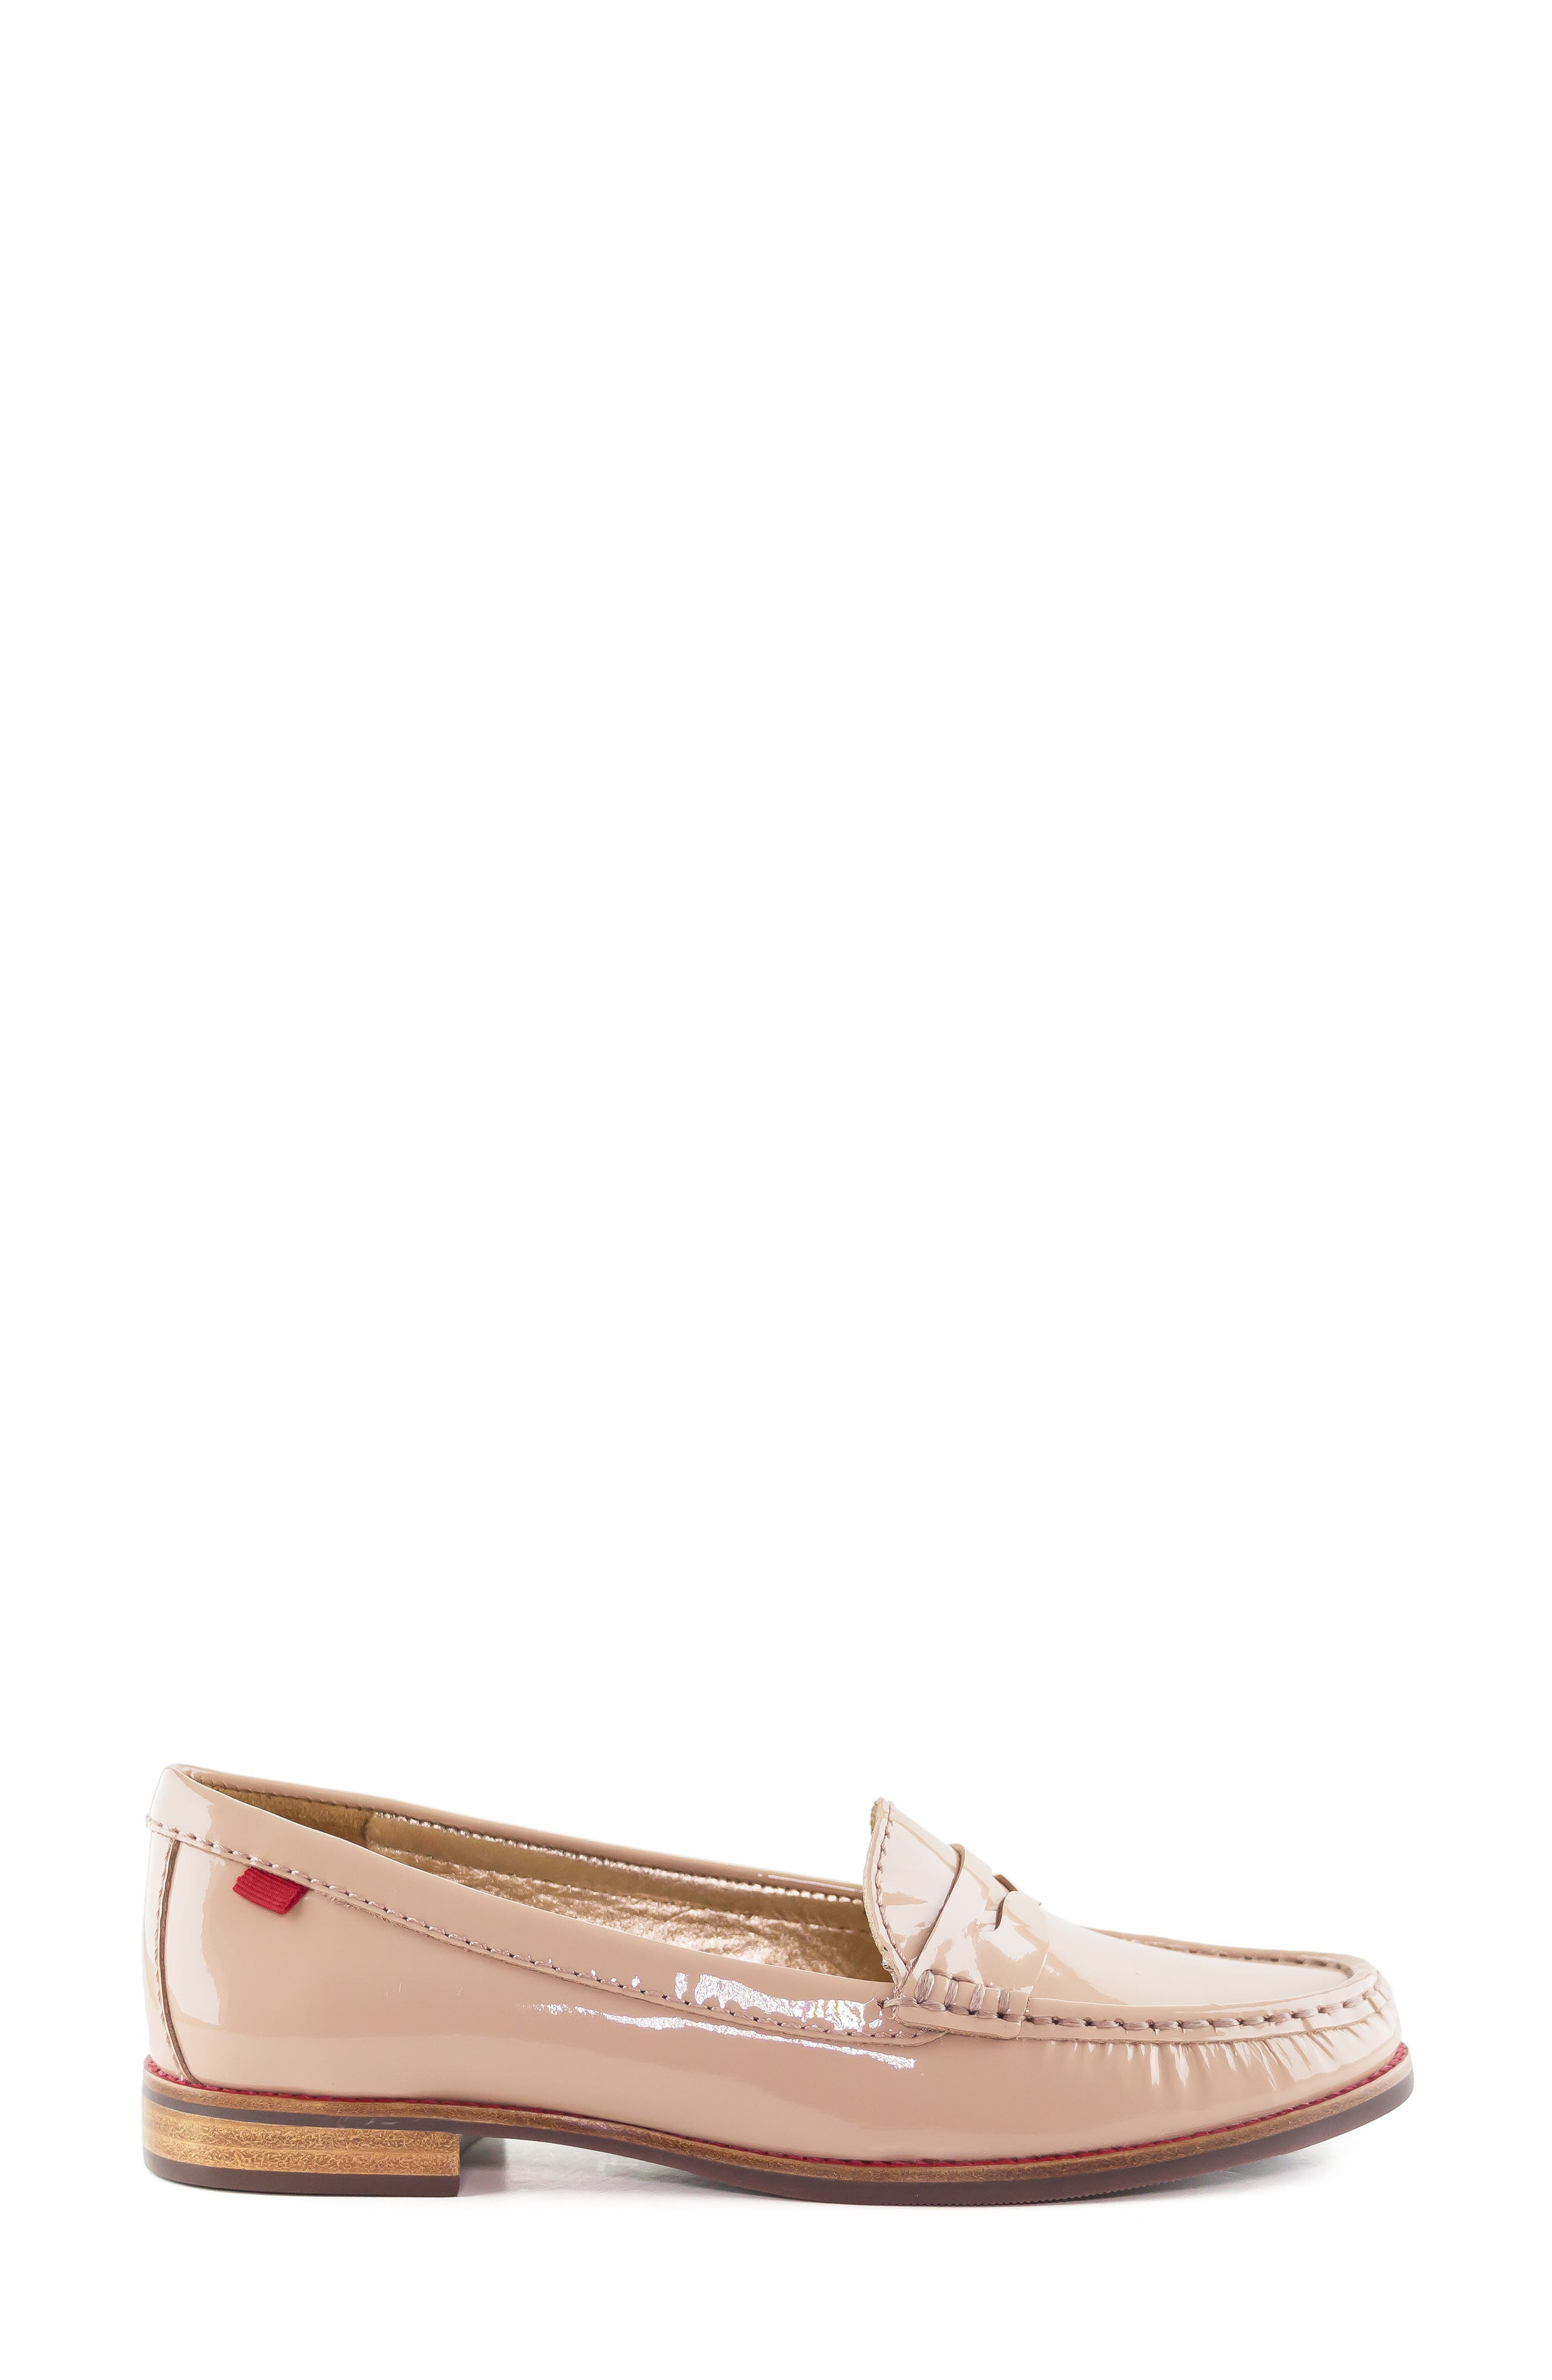 East Village Loafer,                             Alternate thumbnail 3, color,                             NUDE PATENT